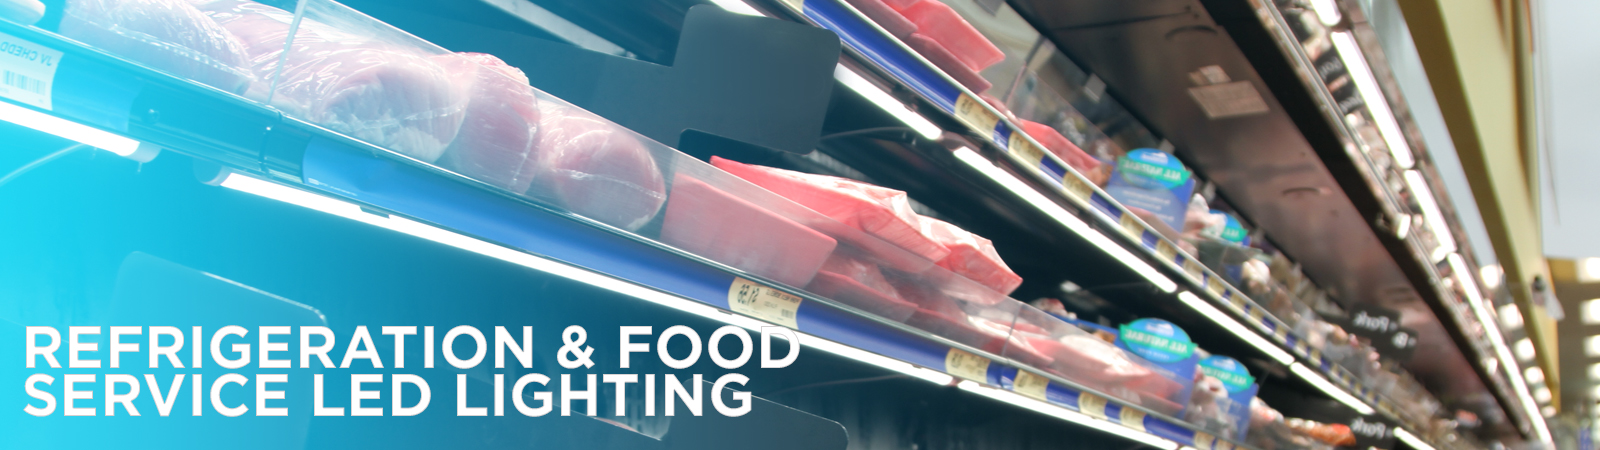 Spirit International Retail LED Refrigeration and Food Service Lighting